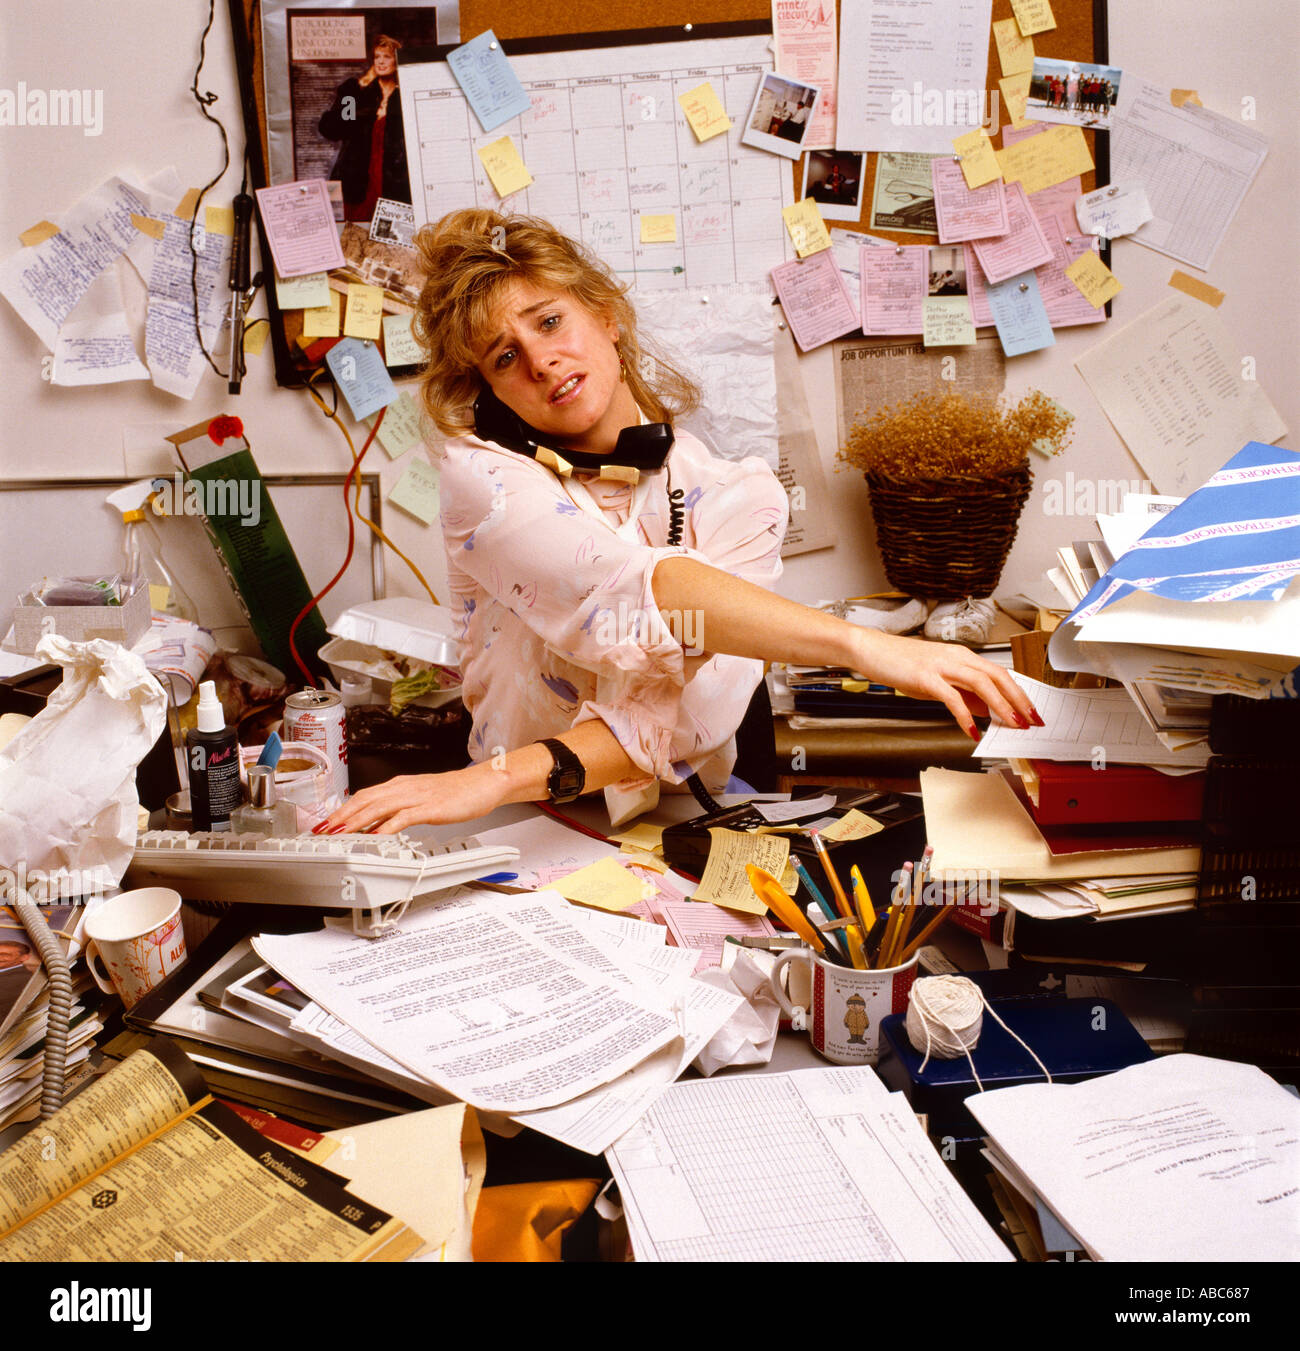 Frustrated office worker on the phone holding stock photo image - Office Environment Frustrated Overworked Office Worker At Her Desk In A Confused Disorganized And Cluttered